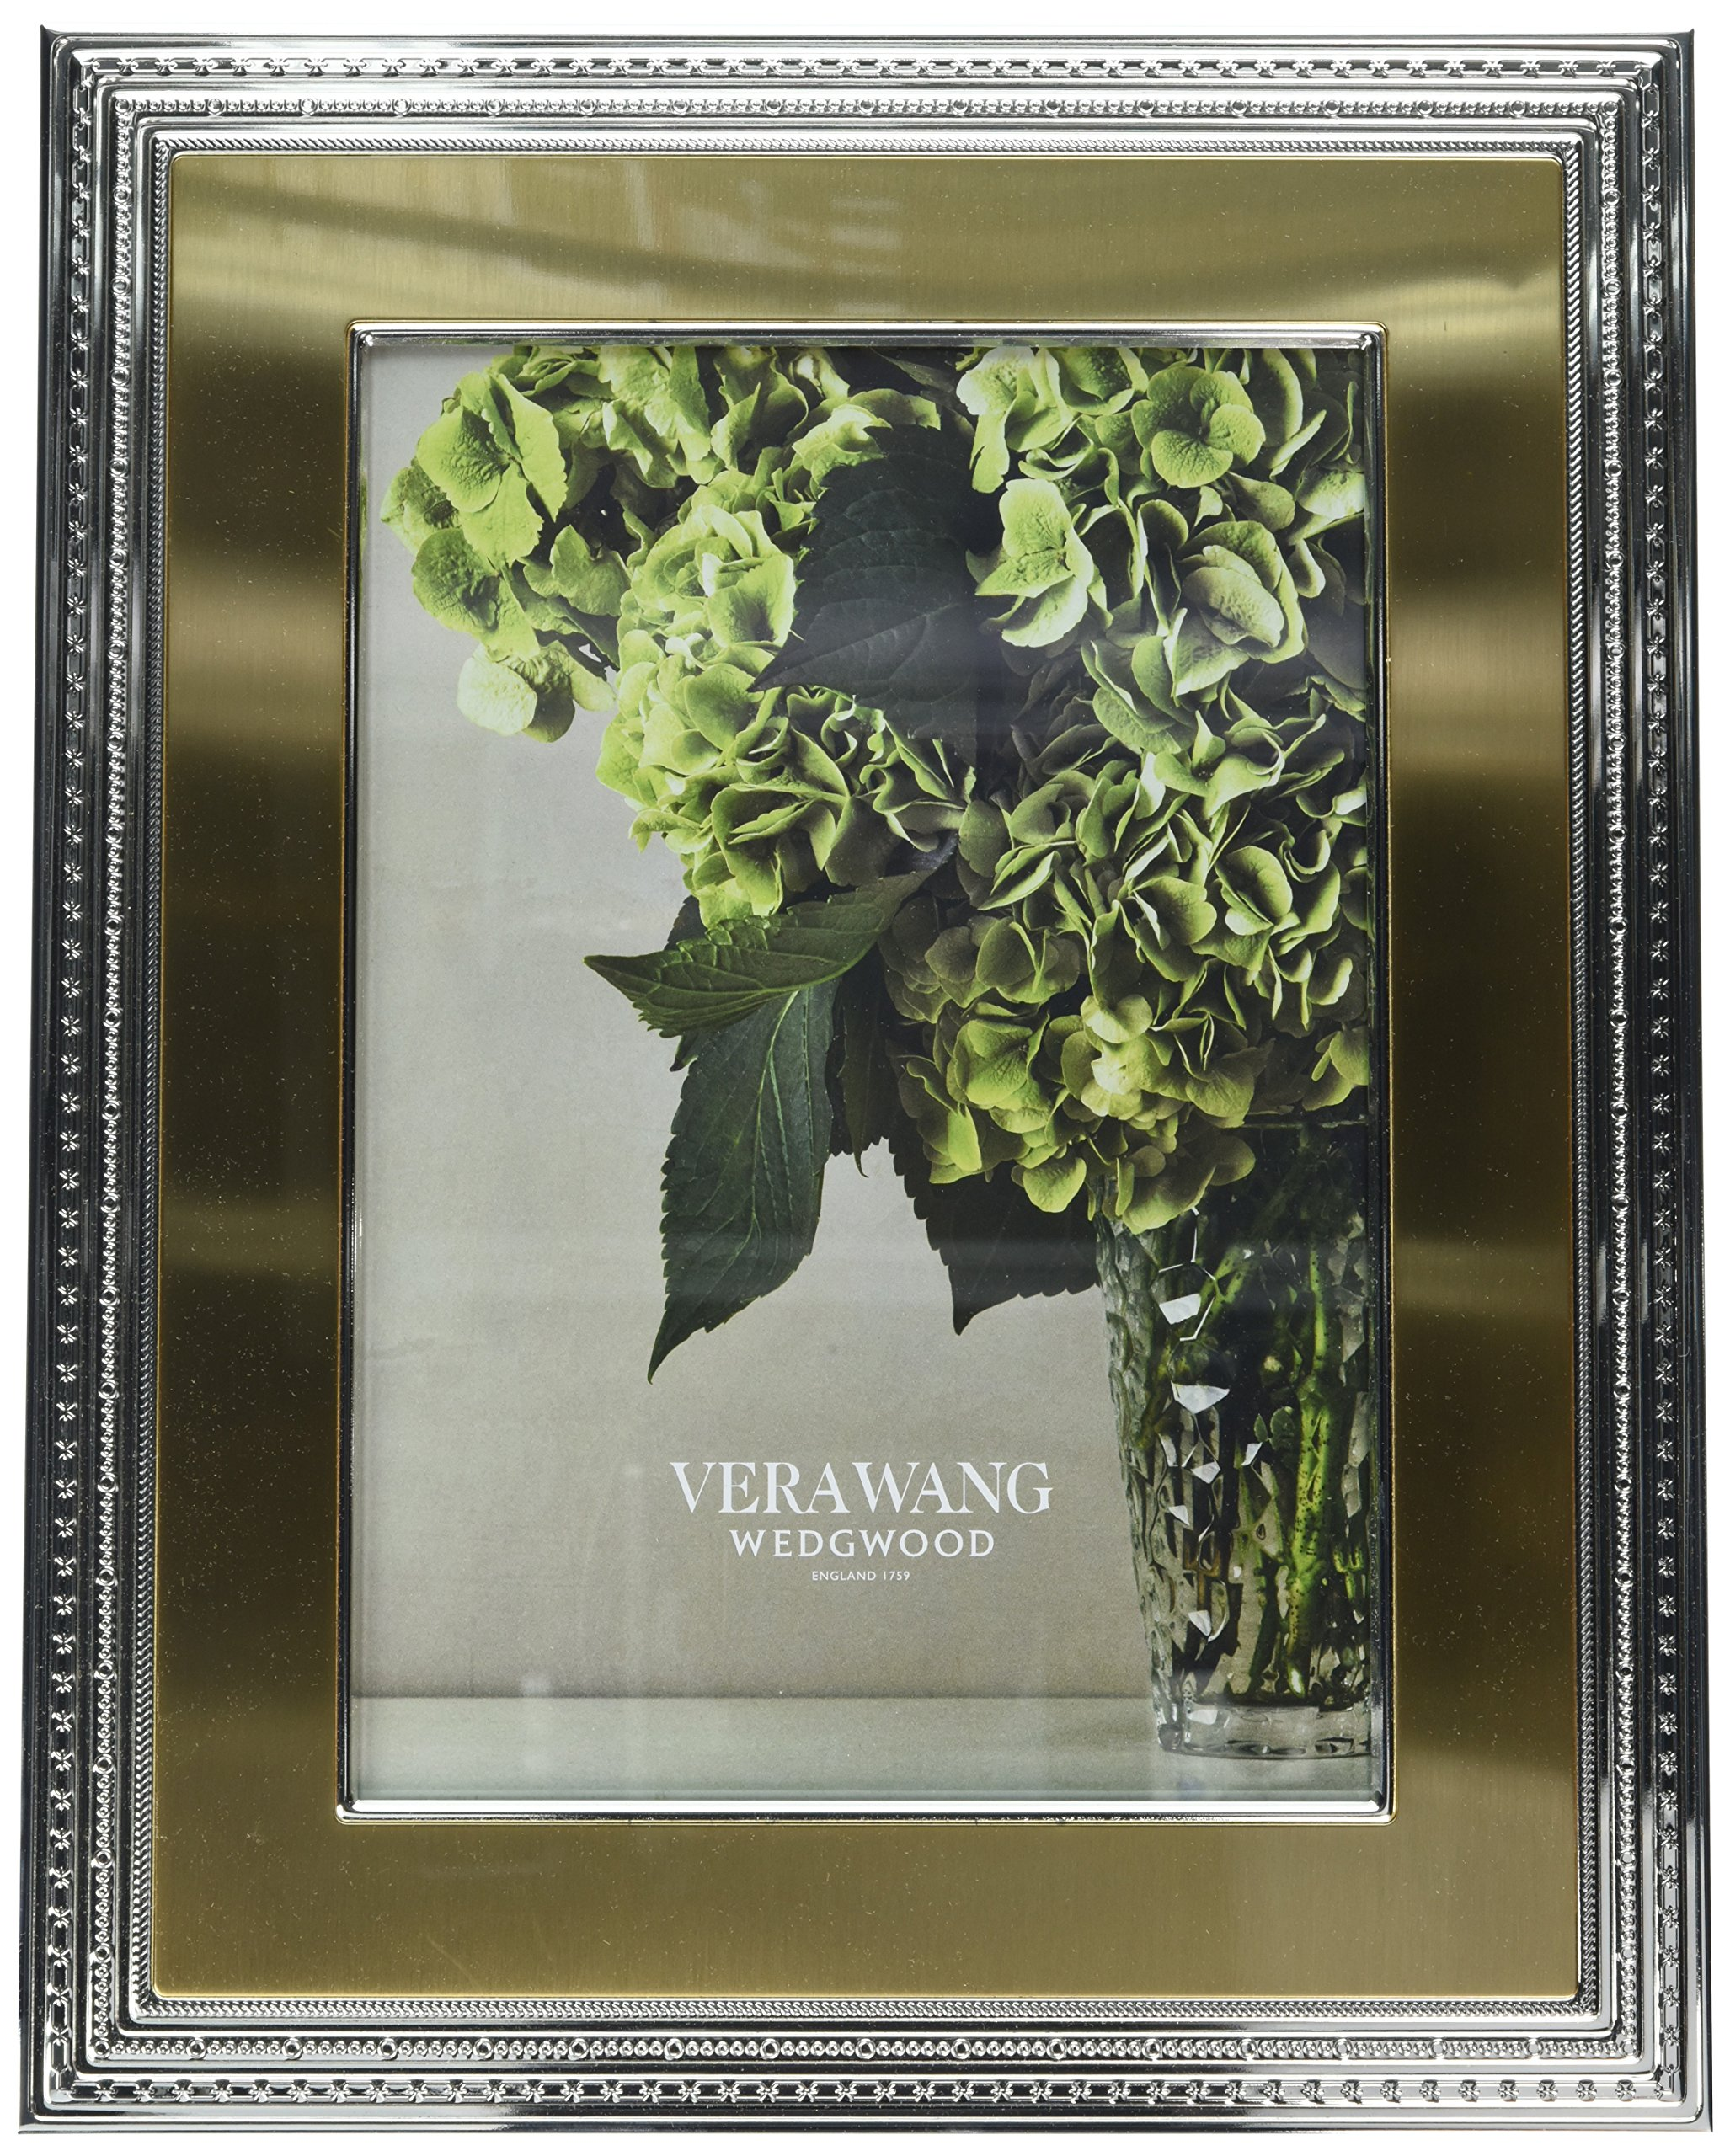 Wedgwood Vera Wang with Love Frame, 8 by 10-Inch, Gold